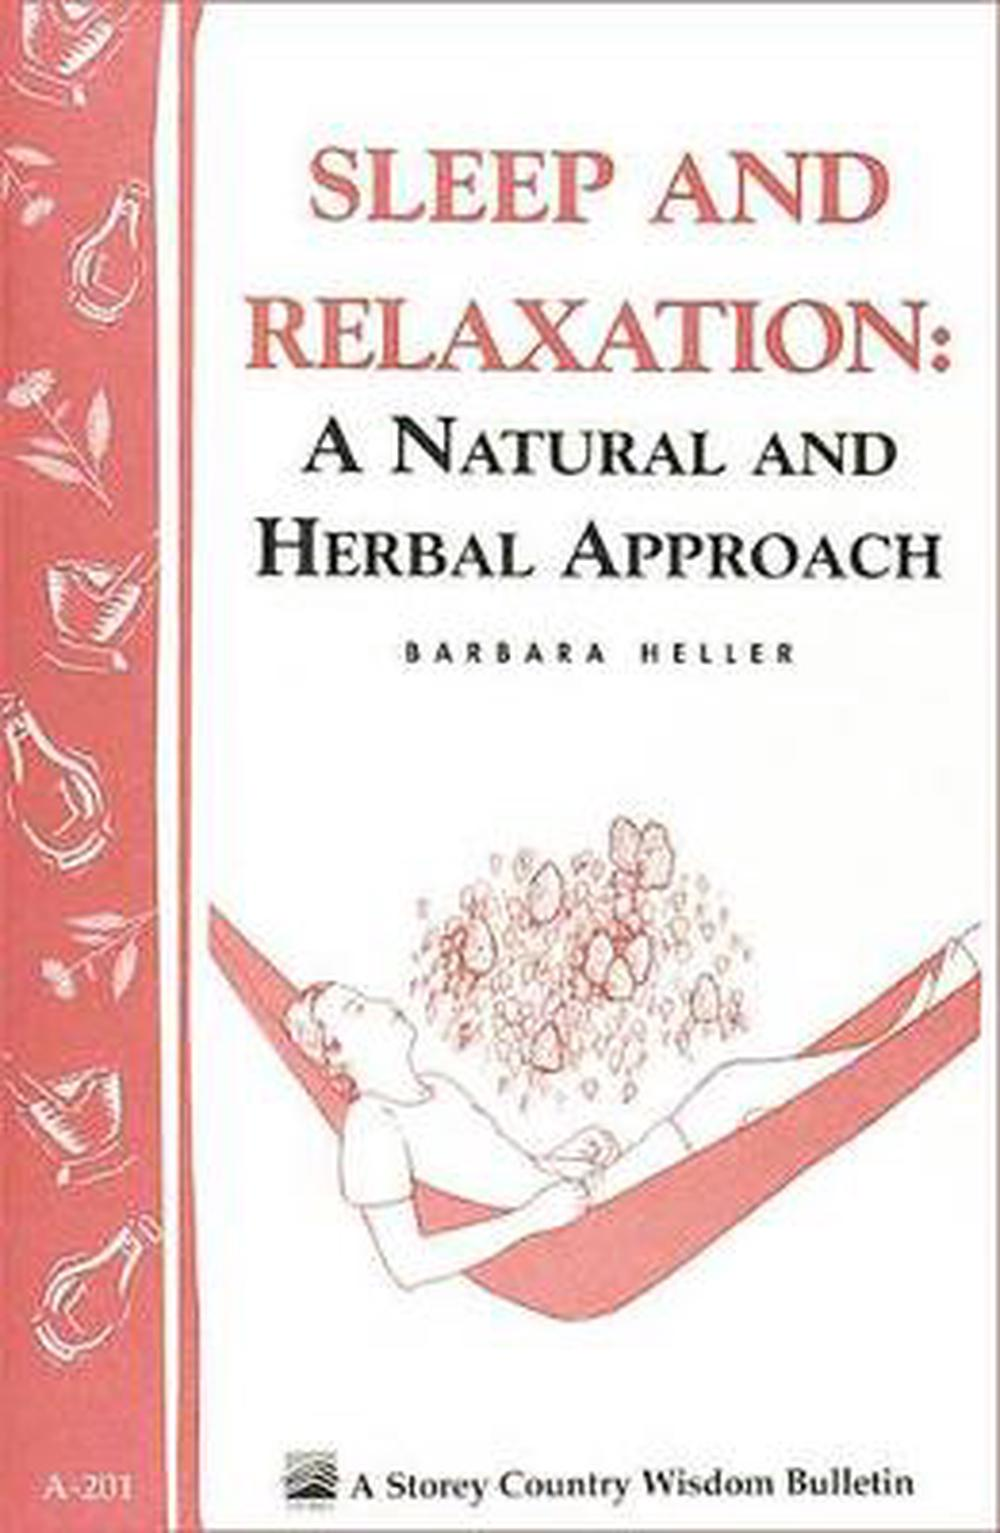 Sleep and Relaxation: A Natural and Herbal Approach